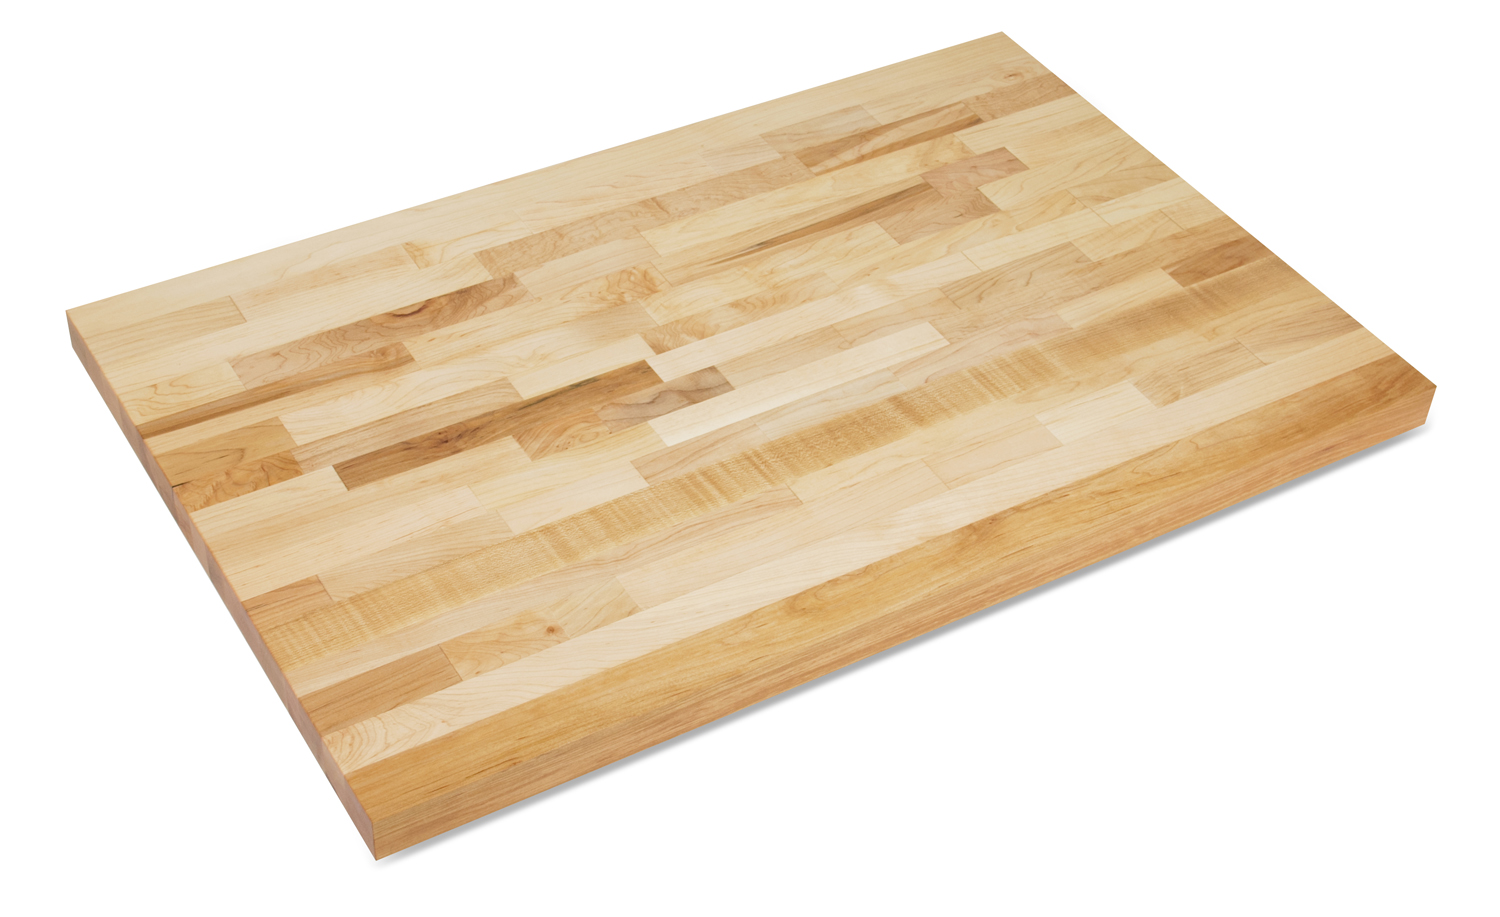 Chopping Table Kitchen Nsf Approved Maple Countertops Boos Butcher Block